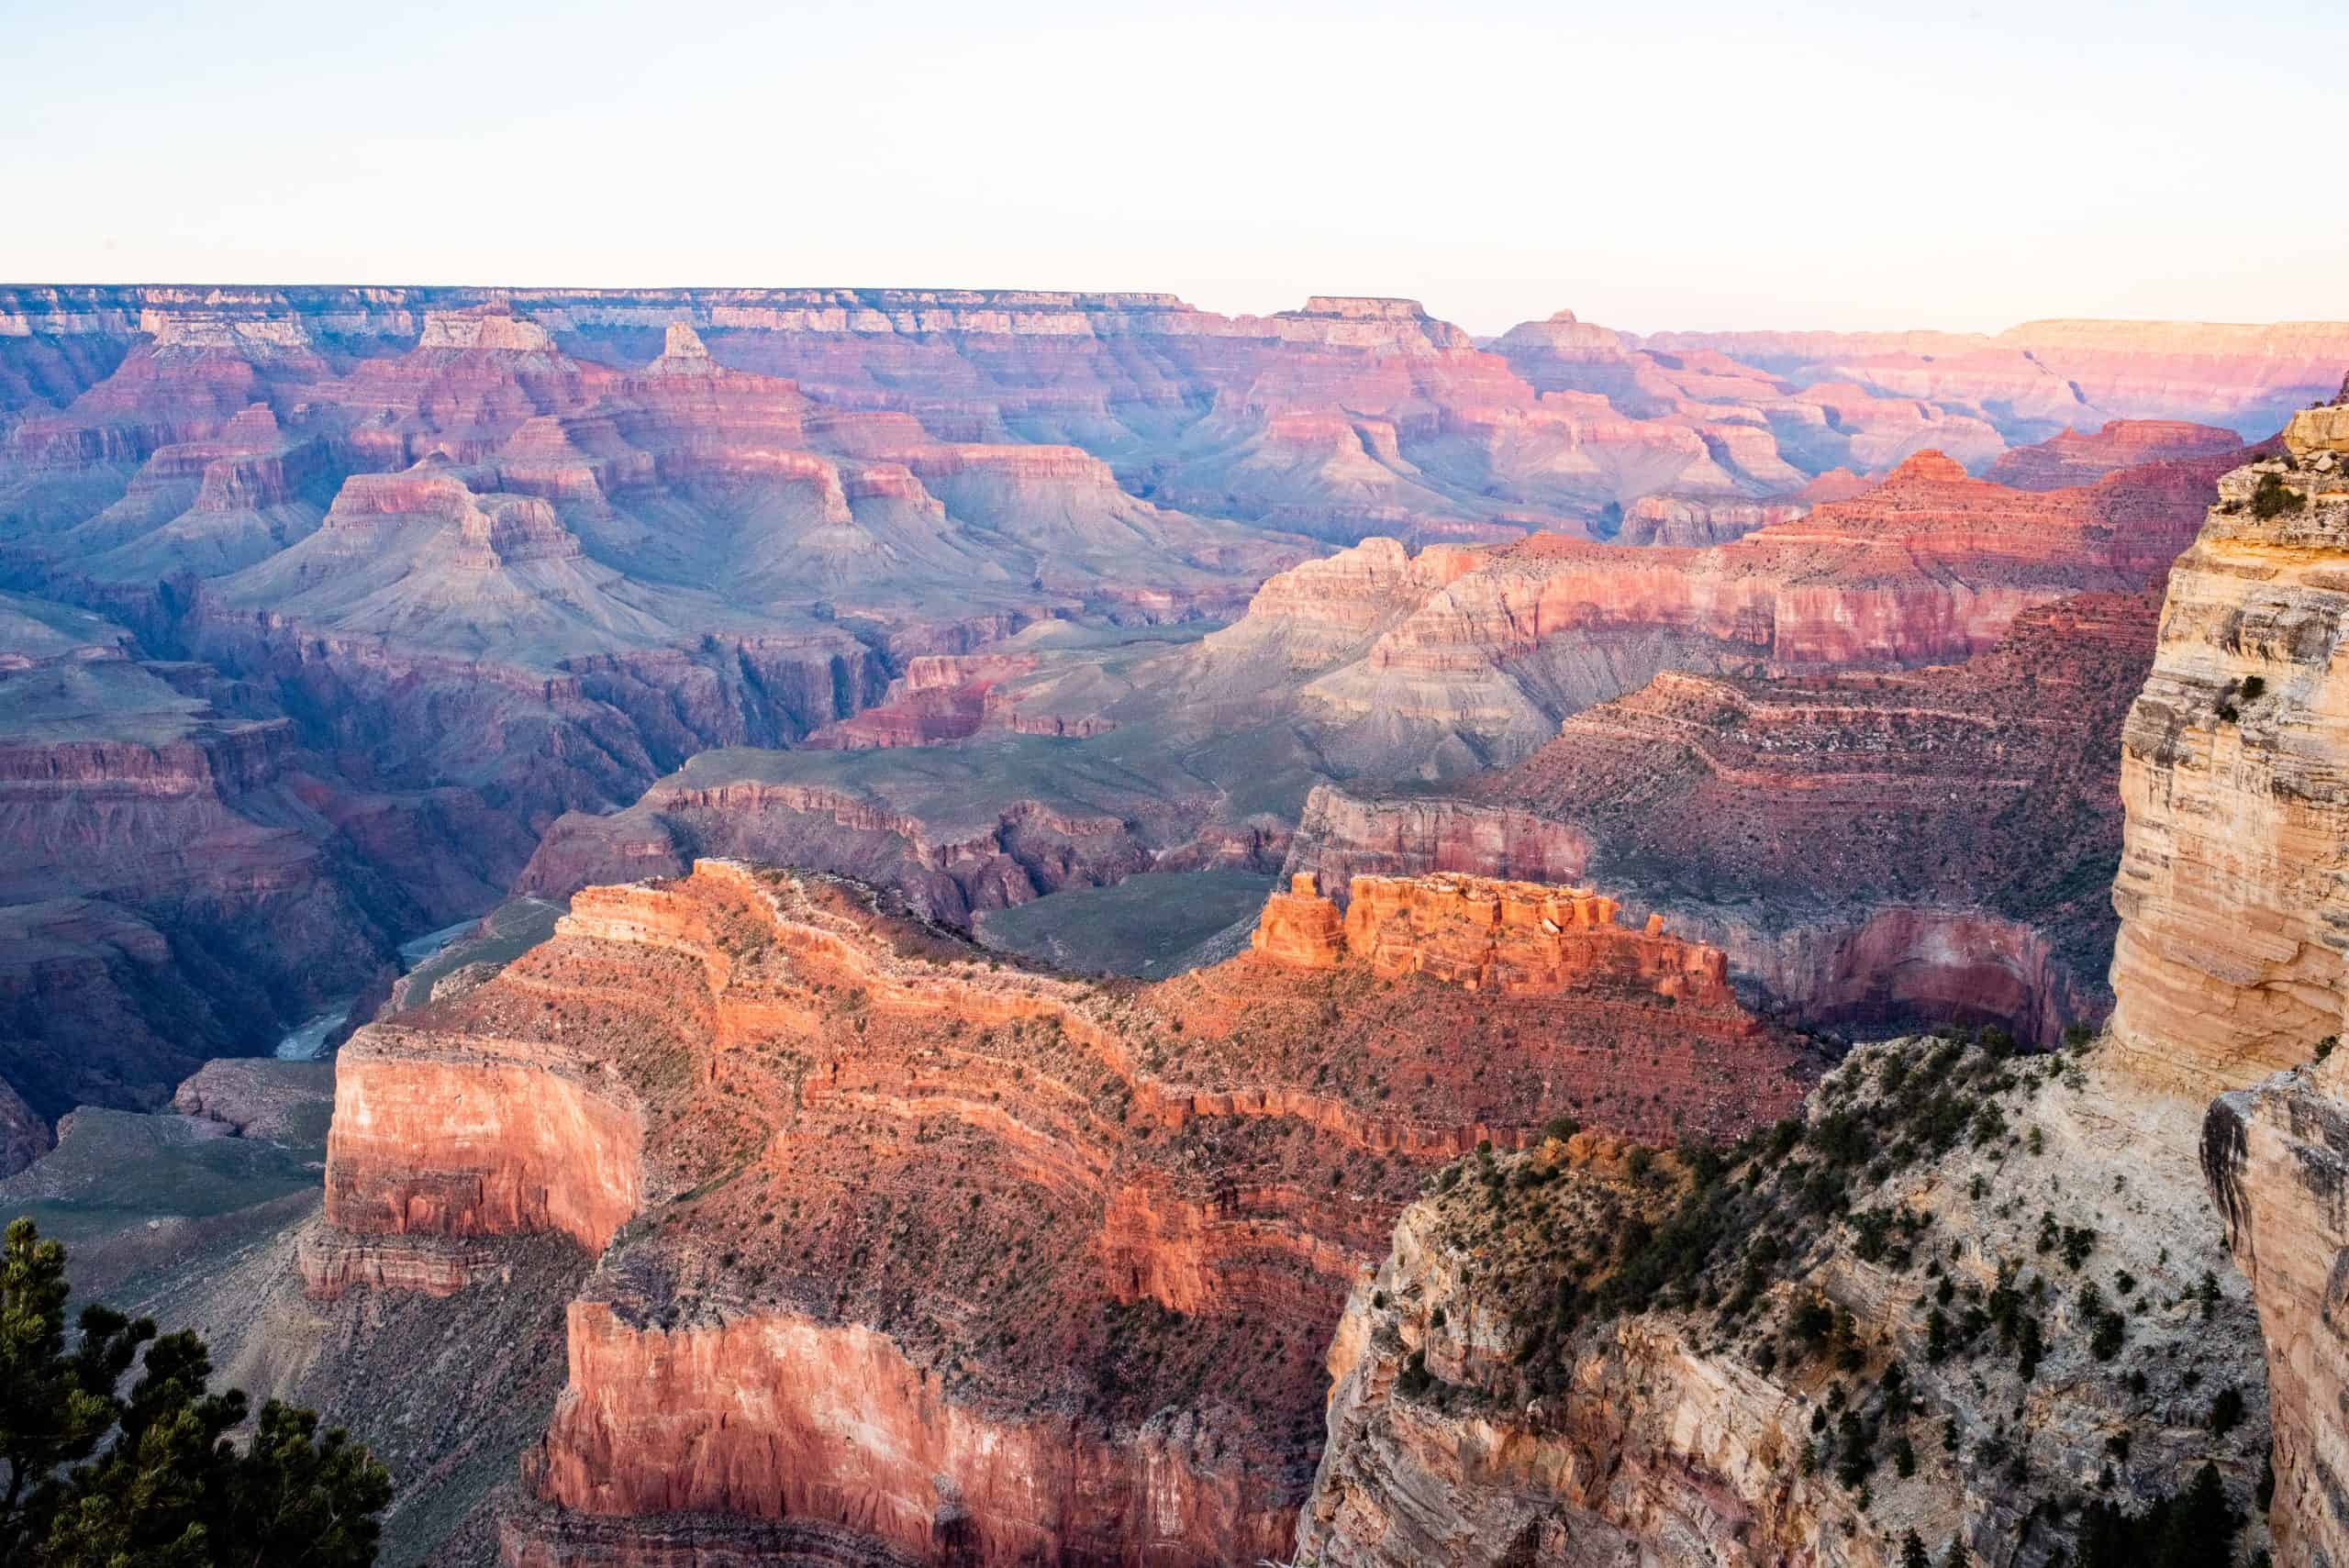 1 Day at the Grand Canyon South Rim